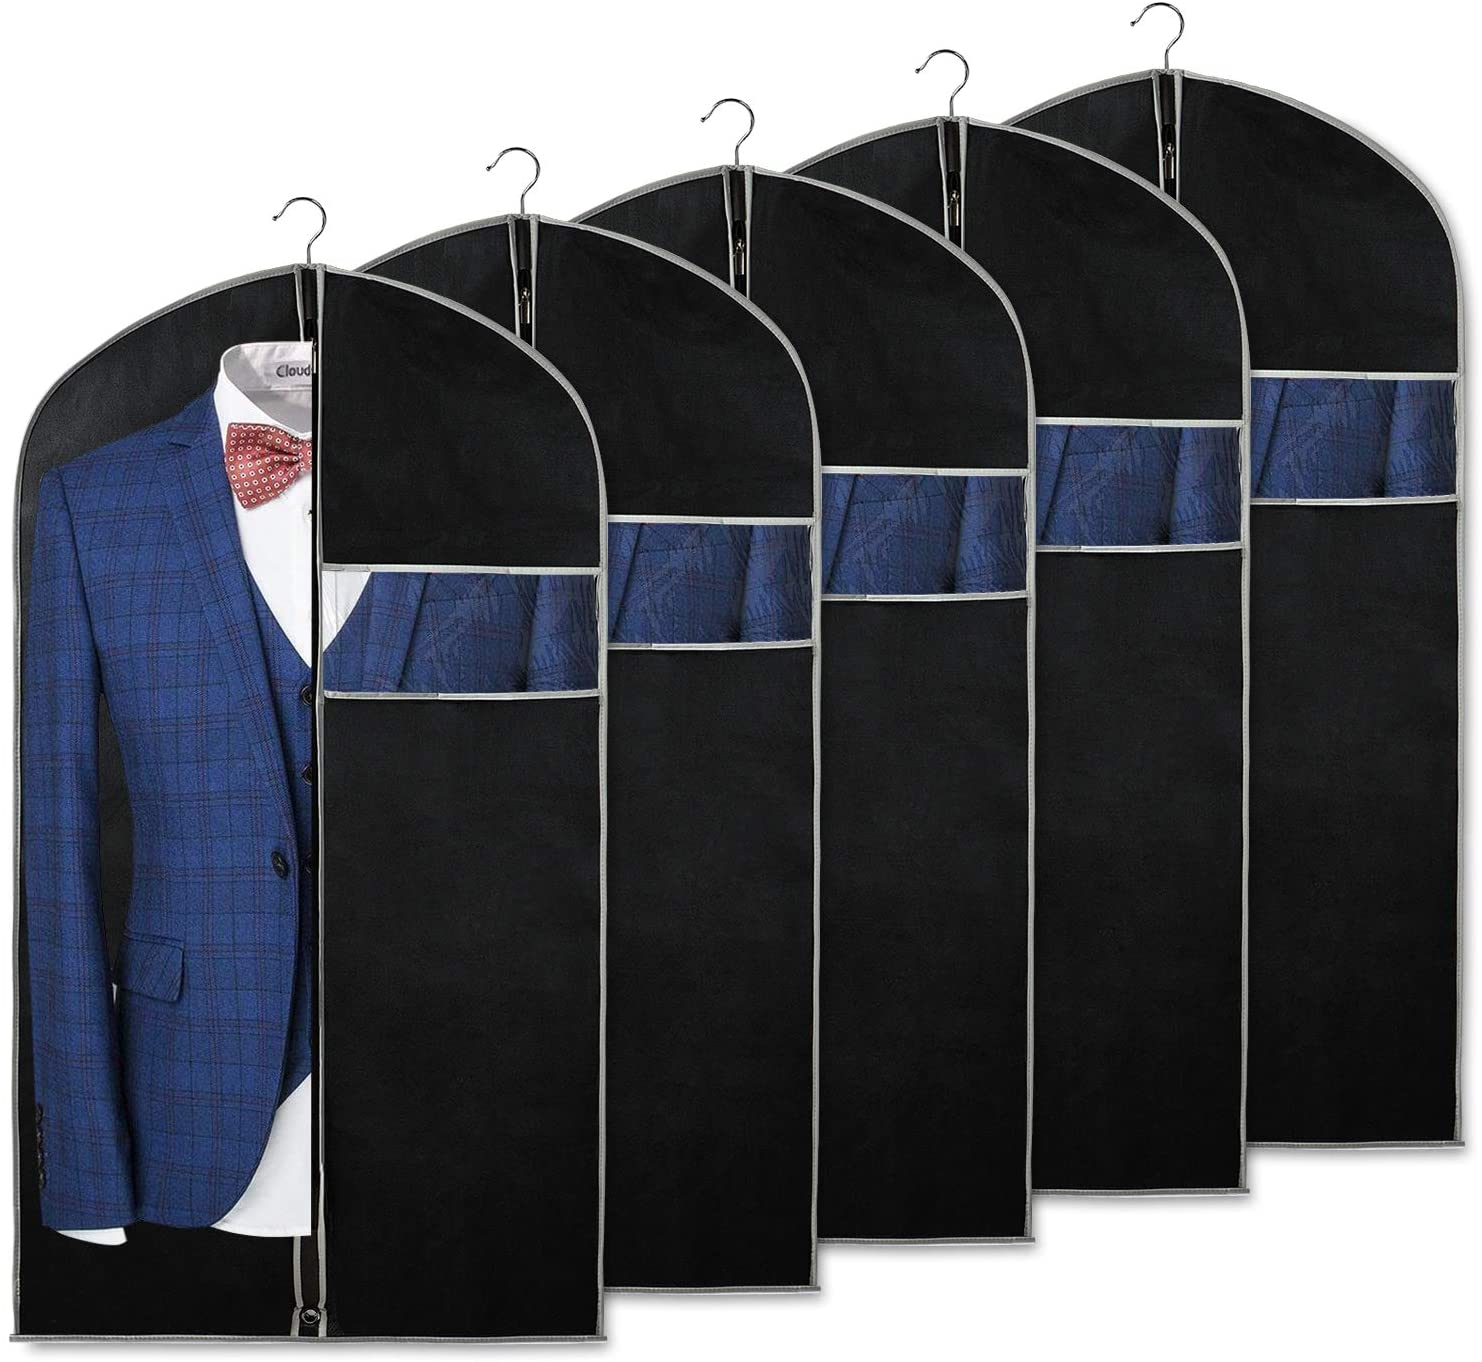 Syeeiex 40 inch Suit Bags for Storage and Travel with Clear Window and ID Card Holder for Suit, Jacket, Skirt, Shirt and Coat, Set of 5